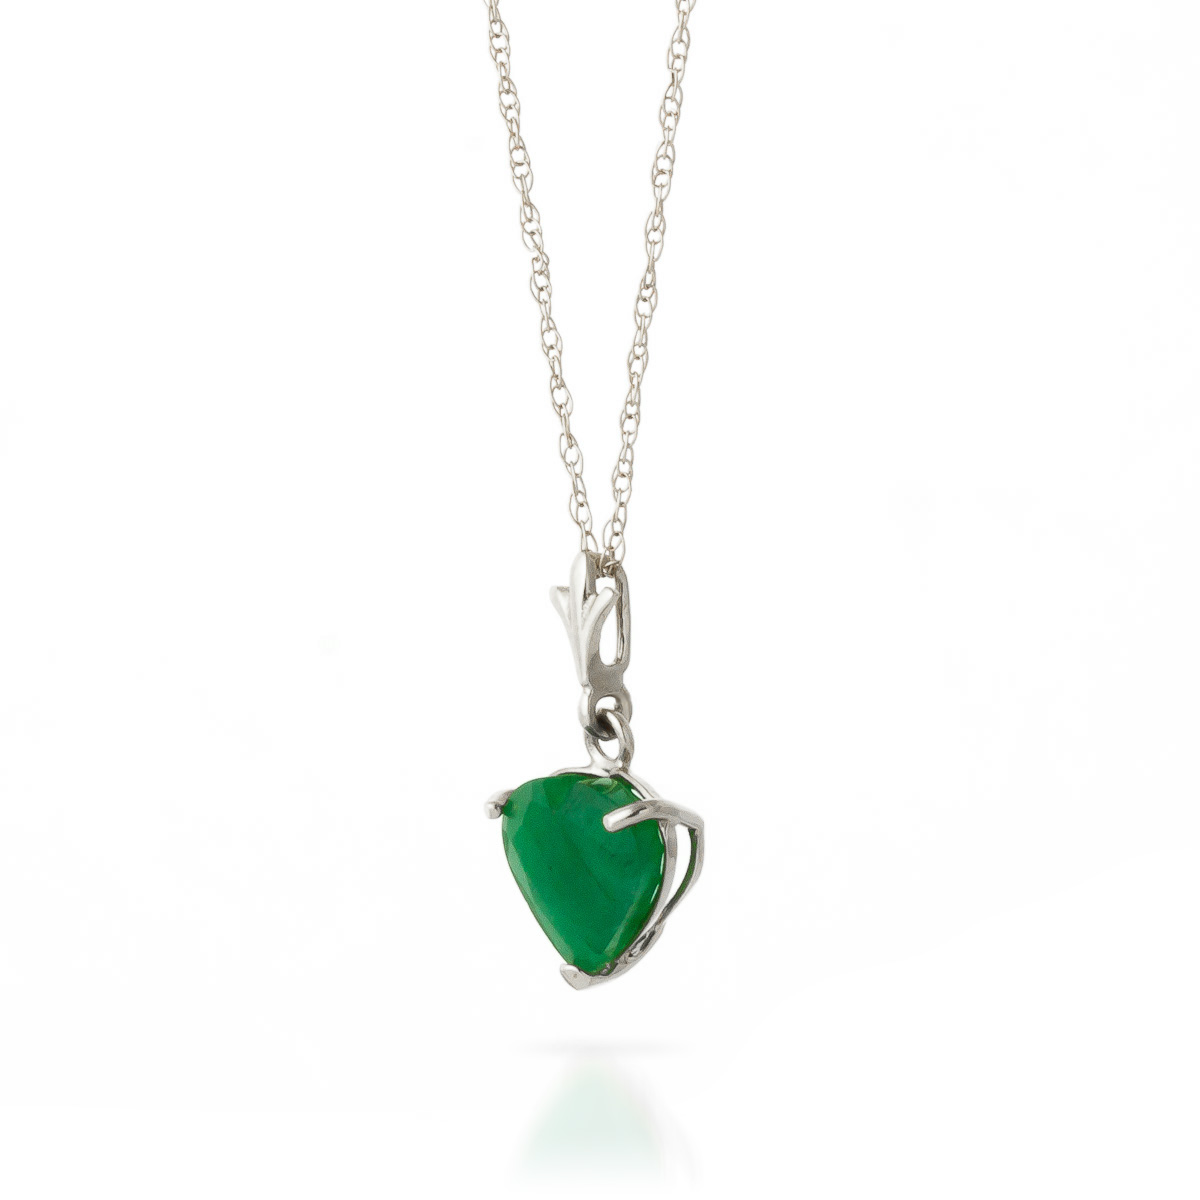 Emerald Heart Pendant Necklace 1.2ct in 9ct White Gold